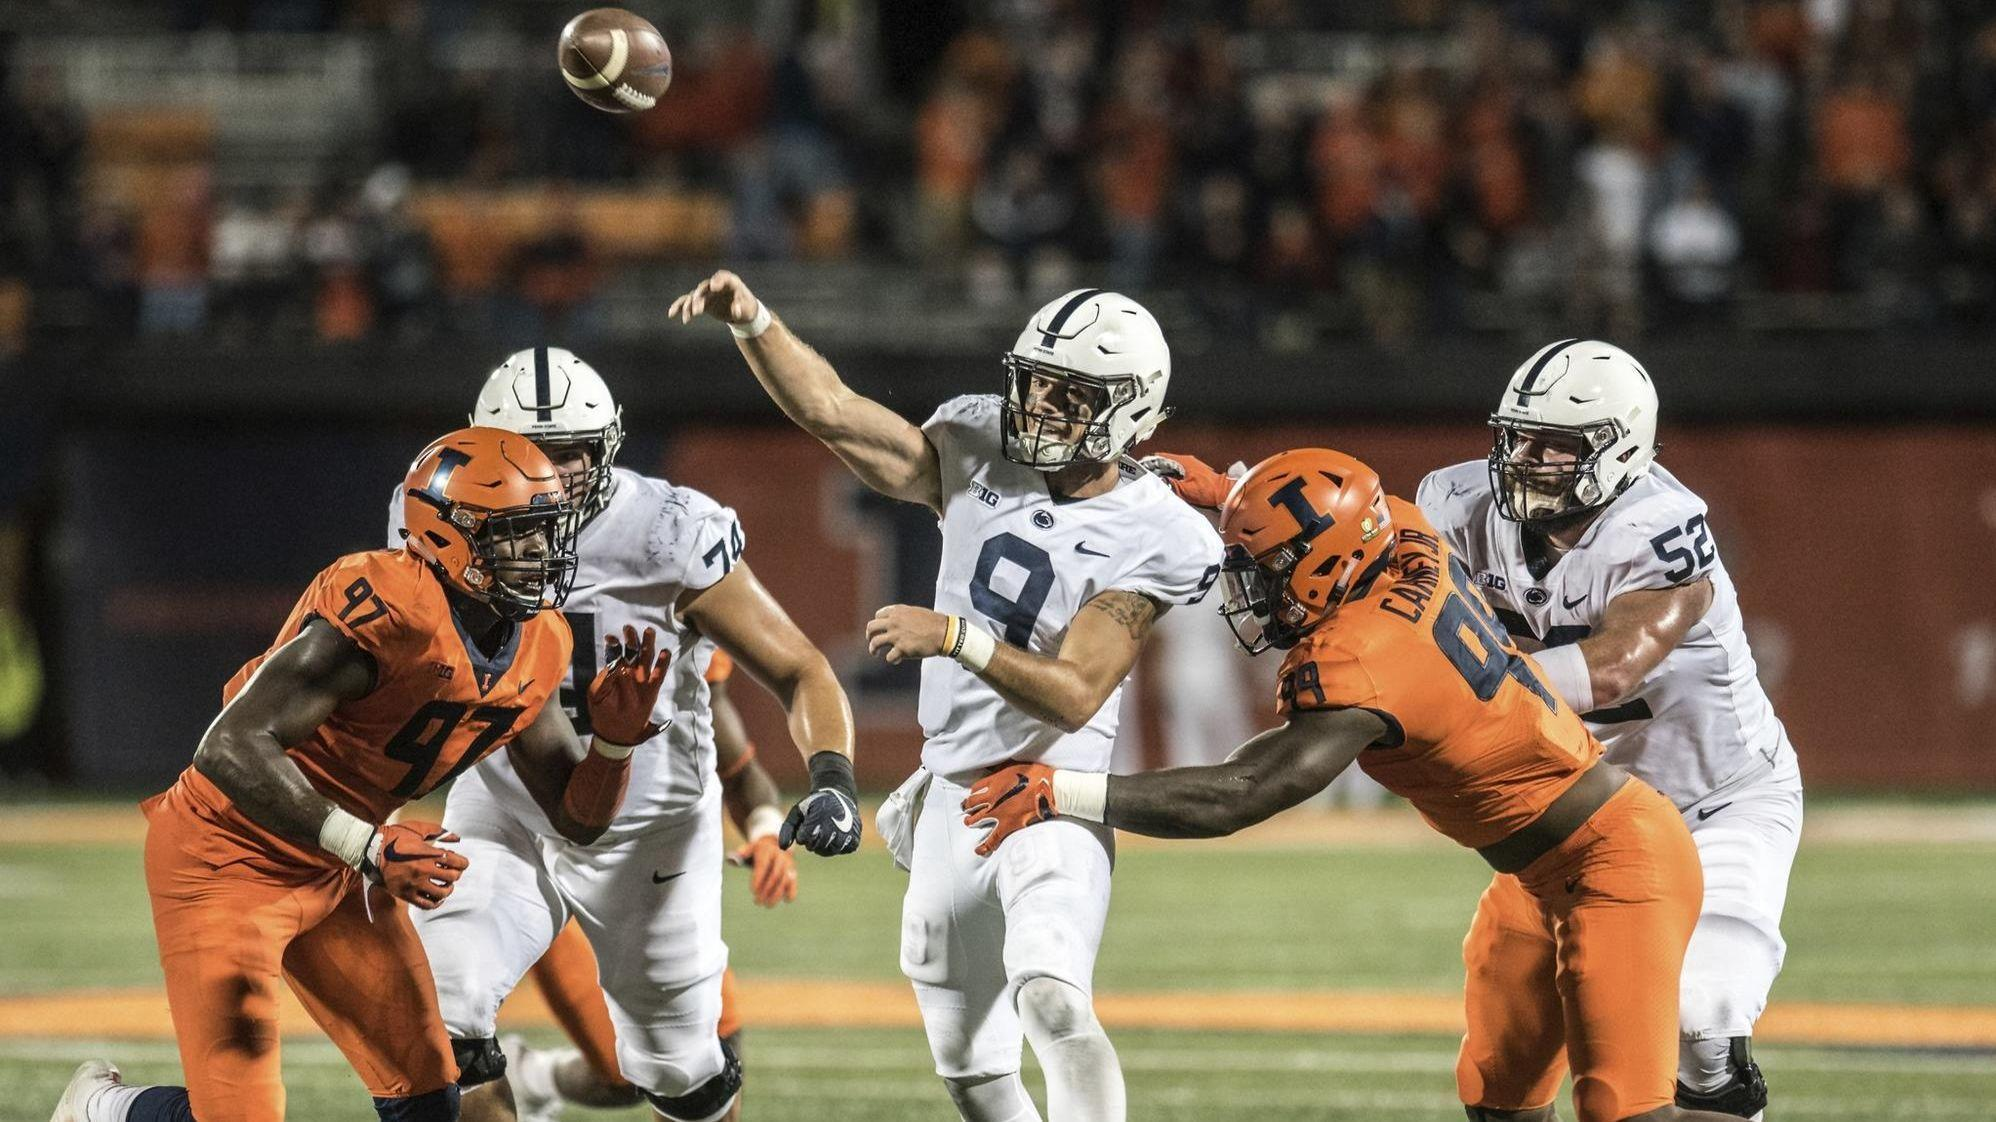 Mc-spt-penn-state-footbal-illinois-grades-20180922